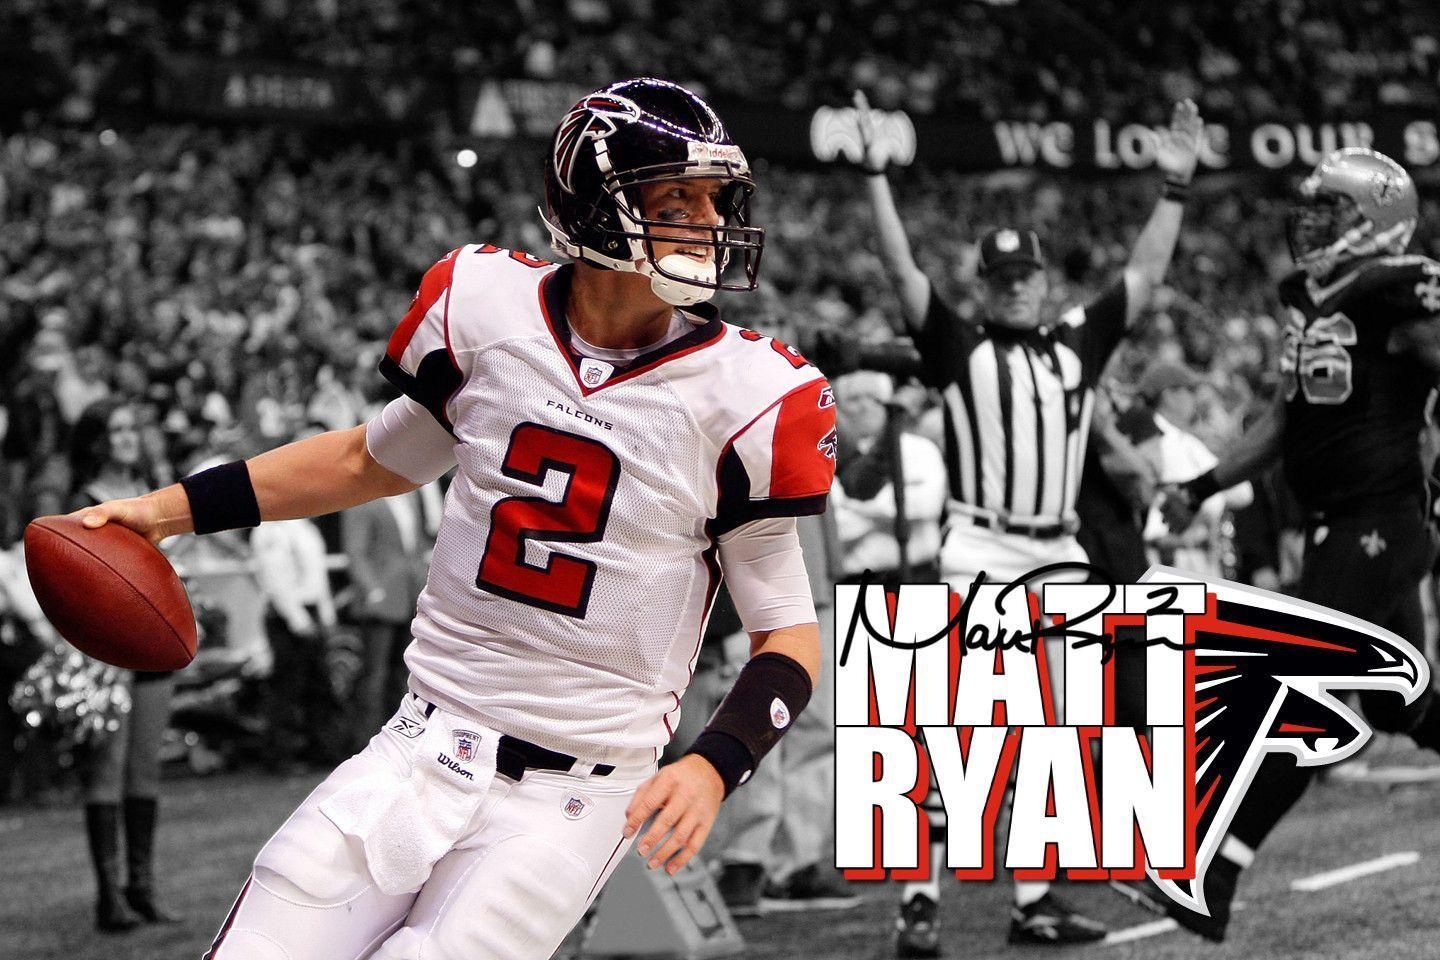 Atlanta Falcons Wallpapers 63981 Best HD Wallpapers